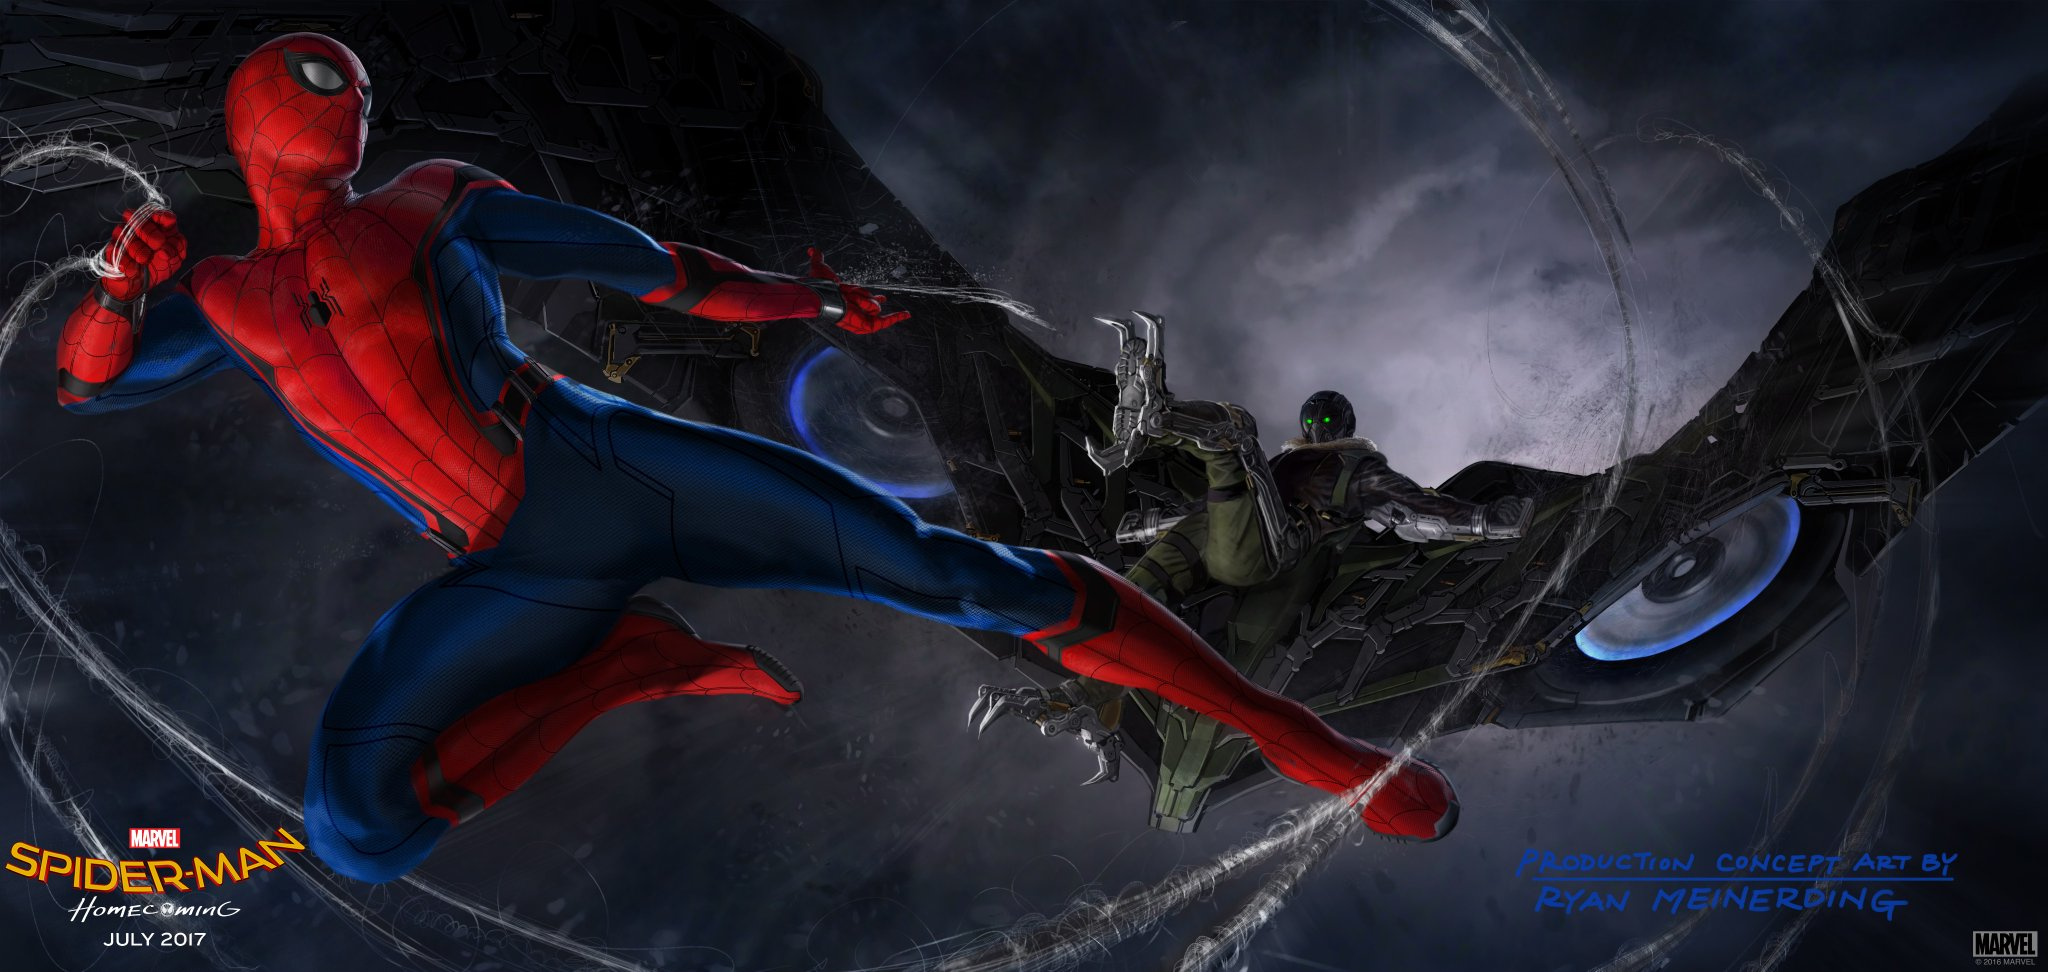 Peter Parker Battles The Vulture In New Spider-Man: Homecoming Concept Art